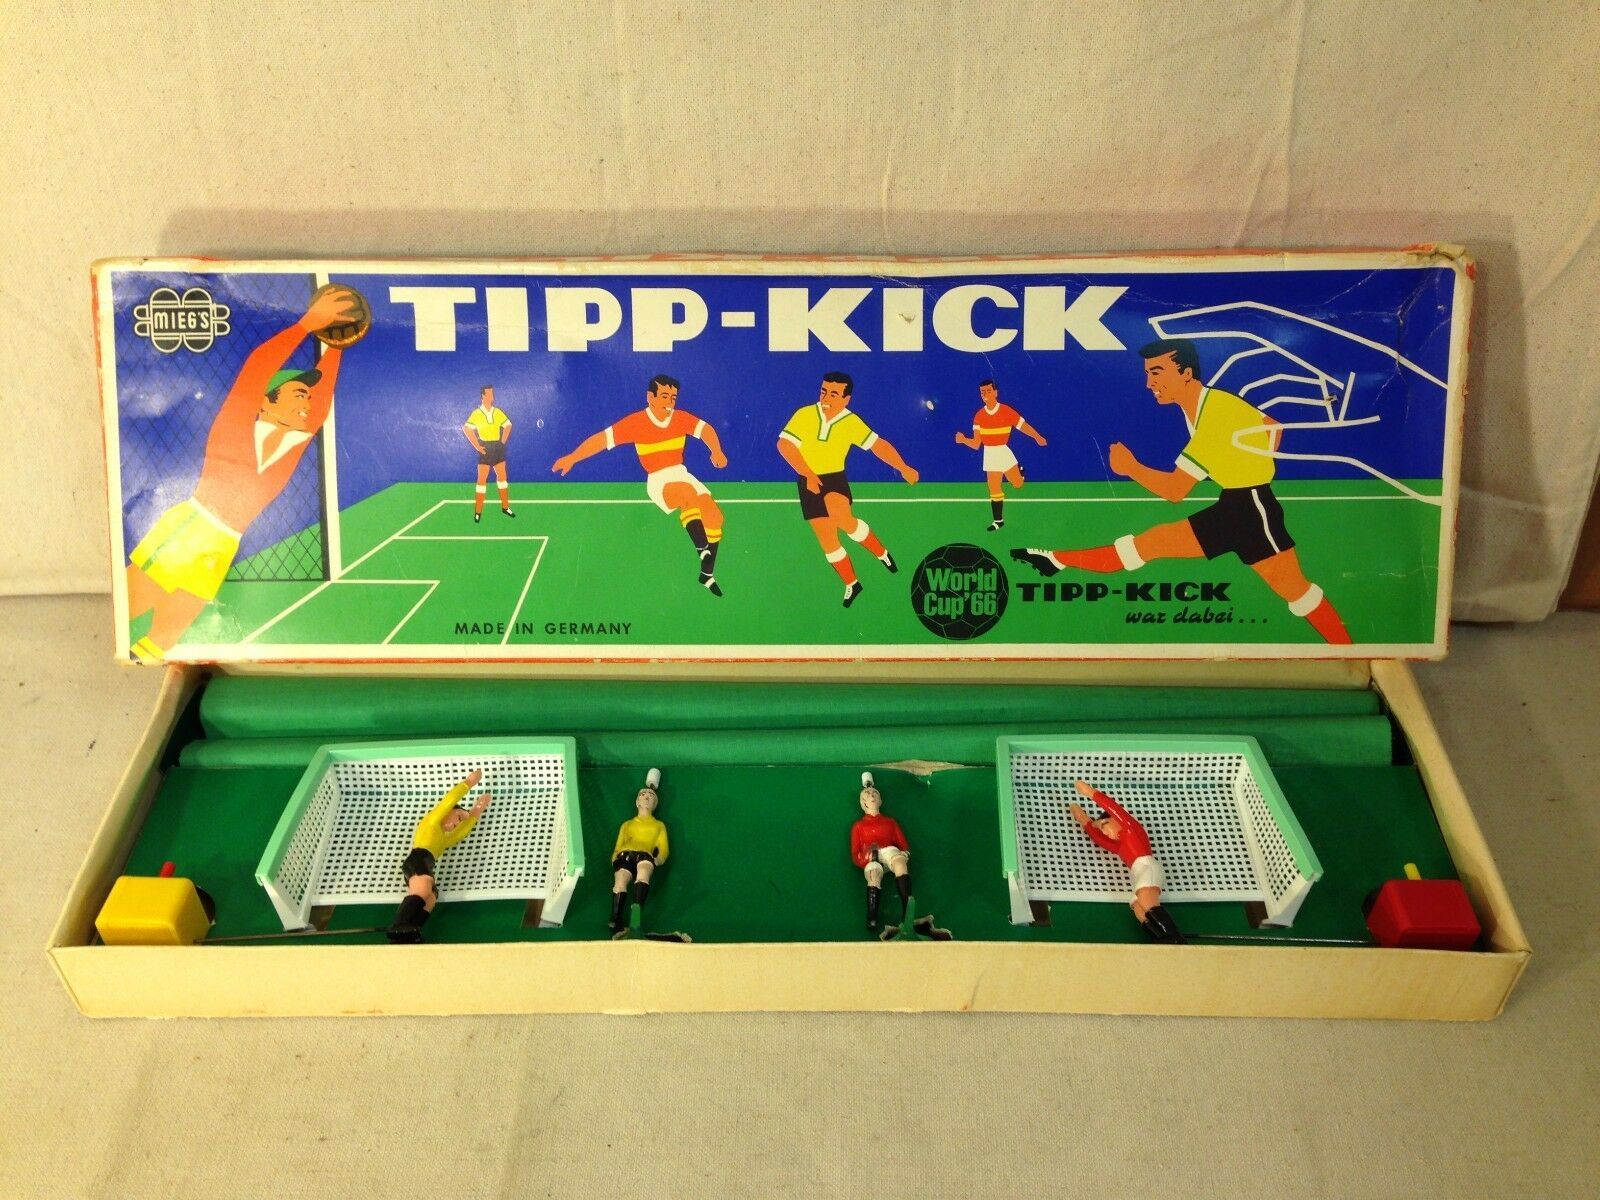 VINTAGE MIEG'S TIPP-KICK WORLD CUP '66 FUTBALL GAME